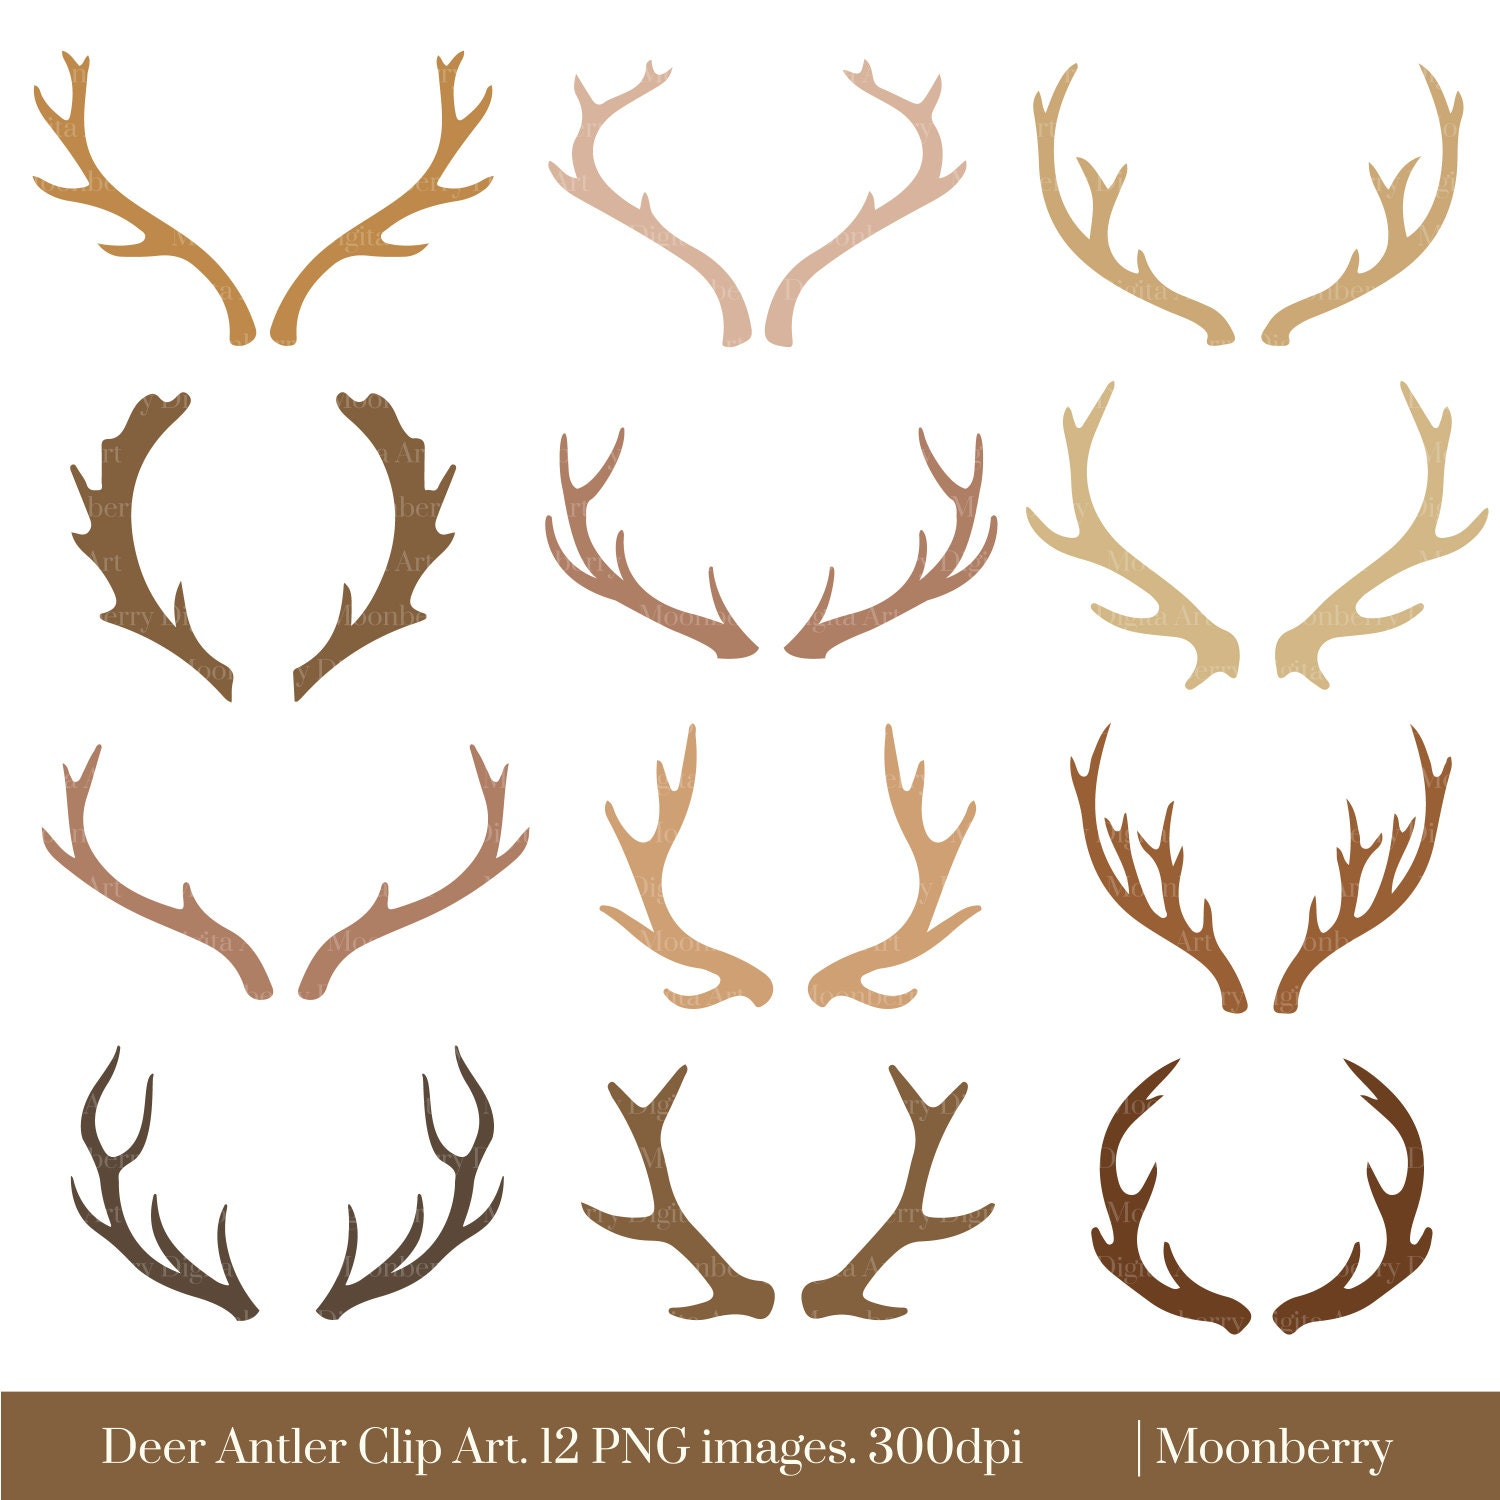 elk antlers graphic - photo #23